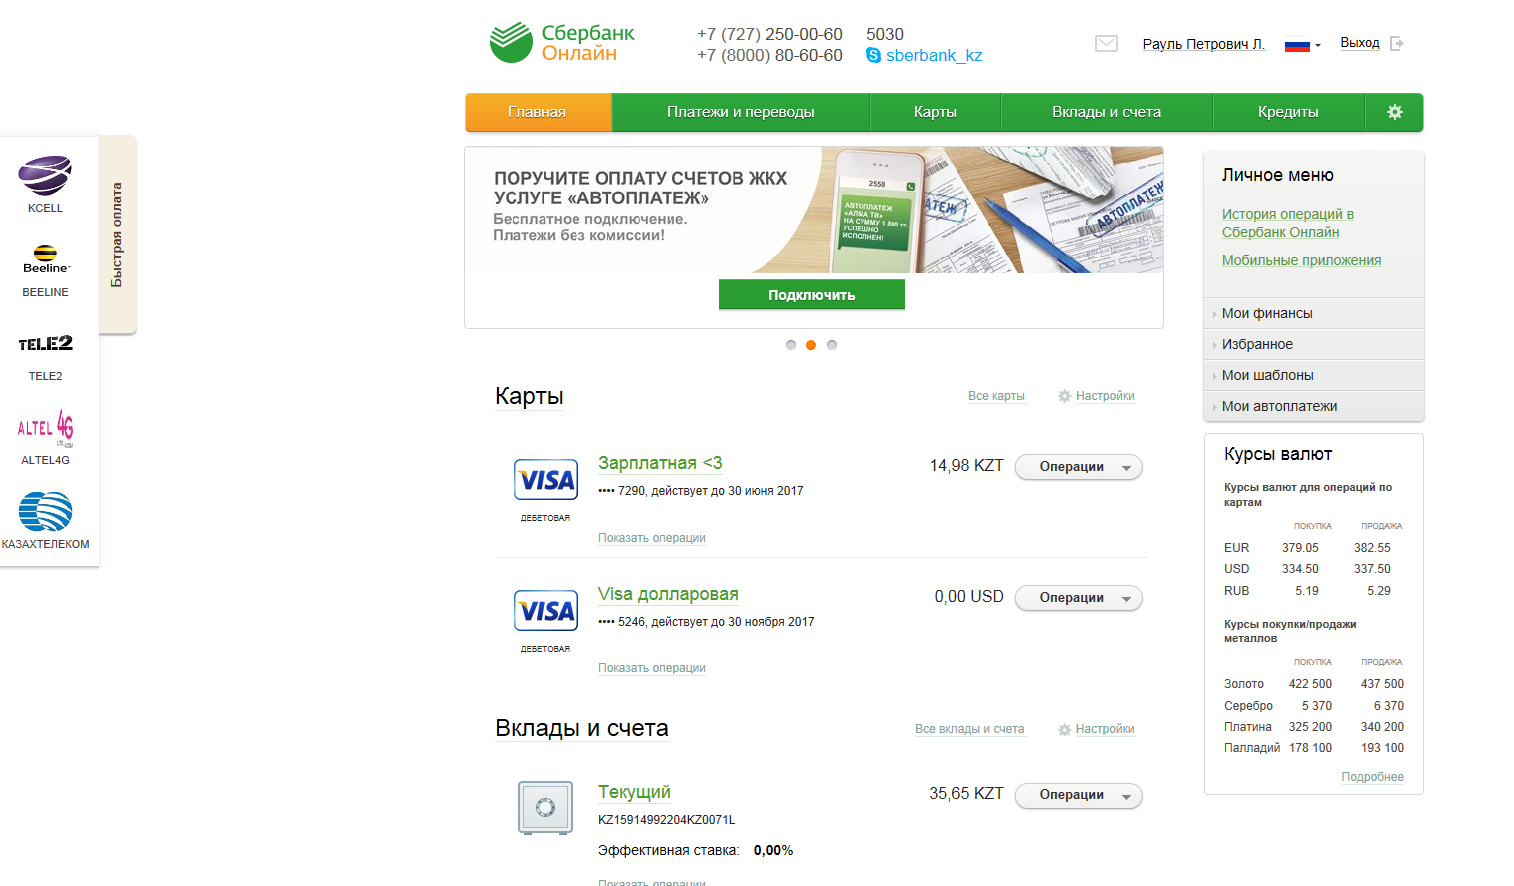 How to transfer money from card to card of Sberbank